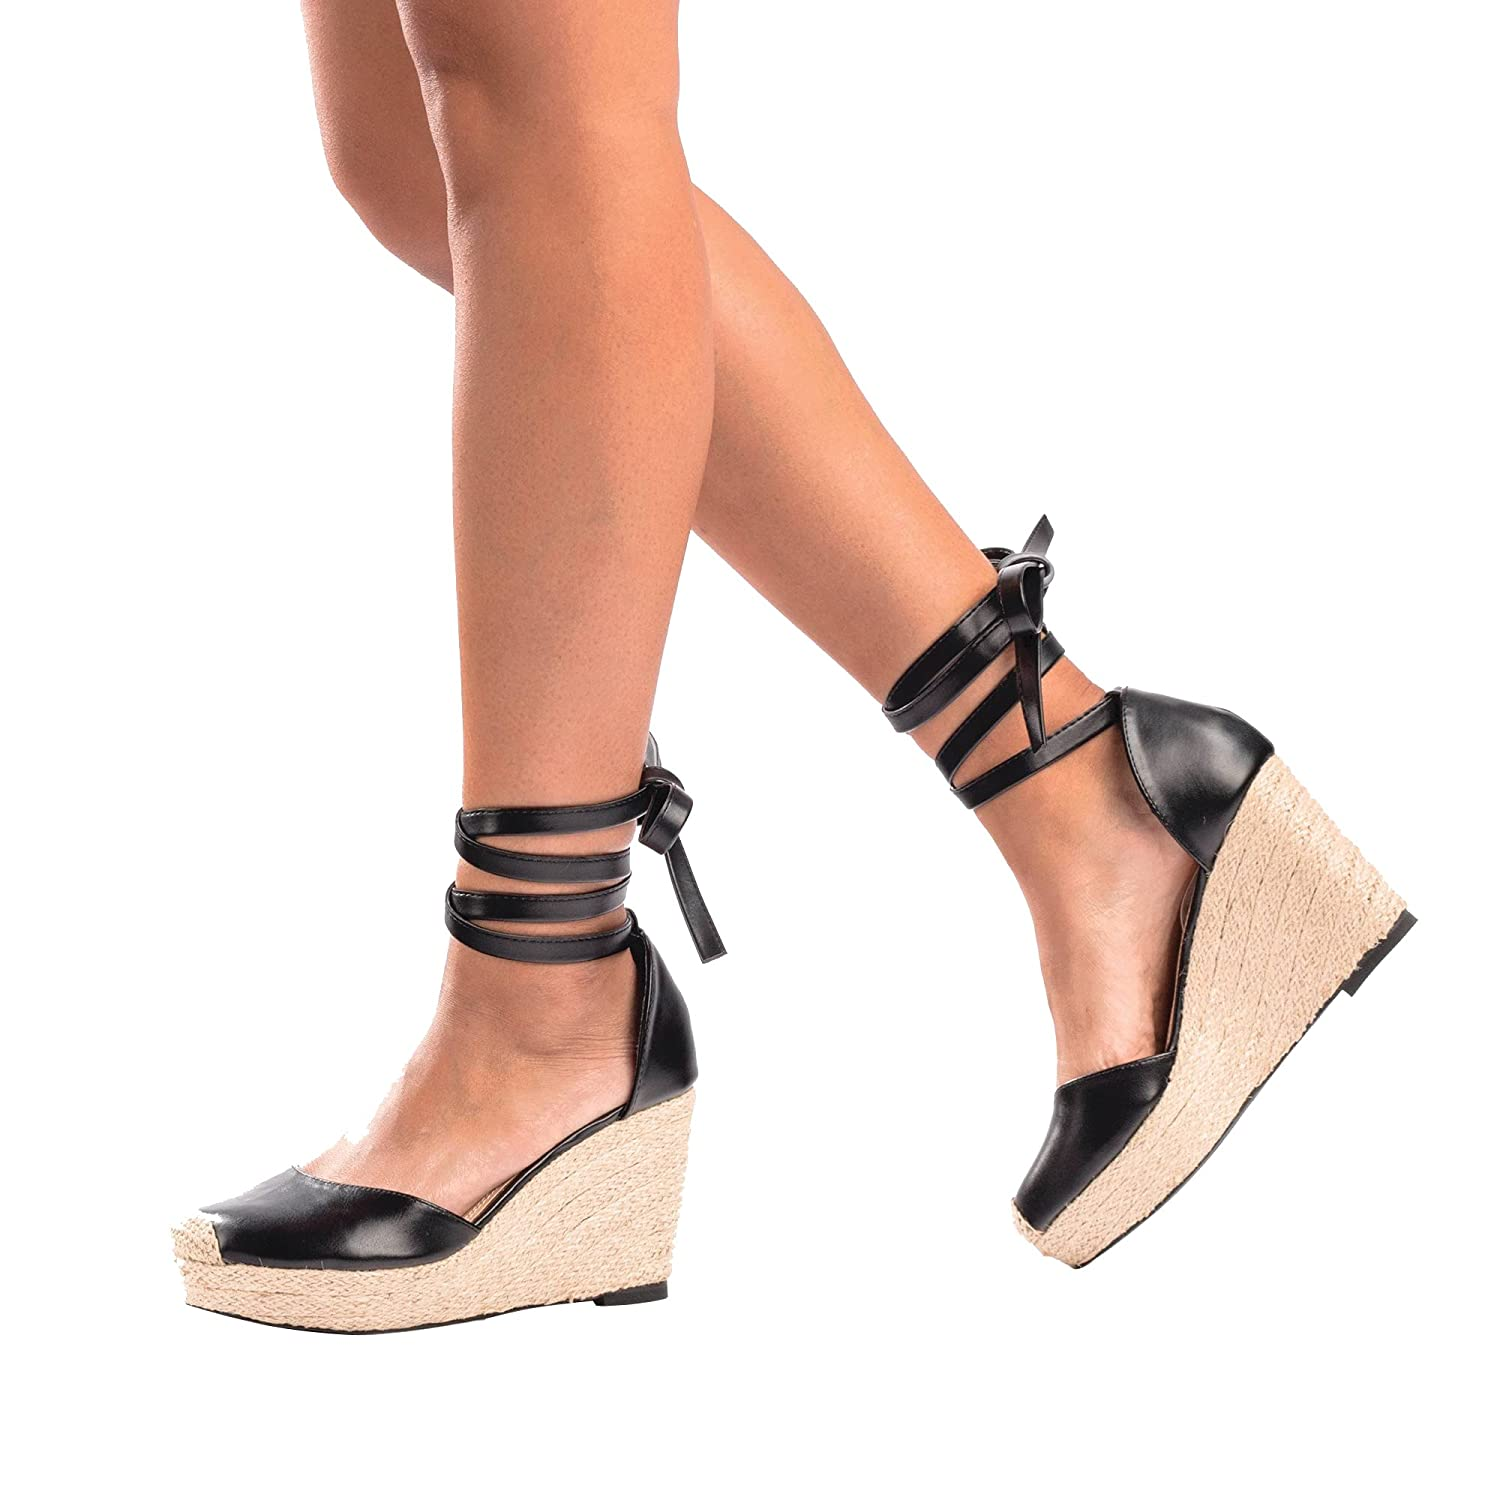 84439daef5f GuiltySoles EVON Lace-Up Wedges Ankle Wrap Sandals Low Wedge Shoes ...